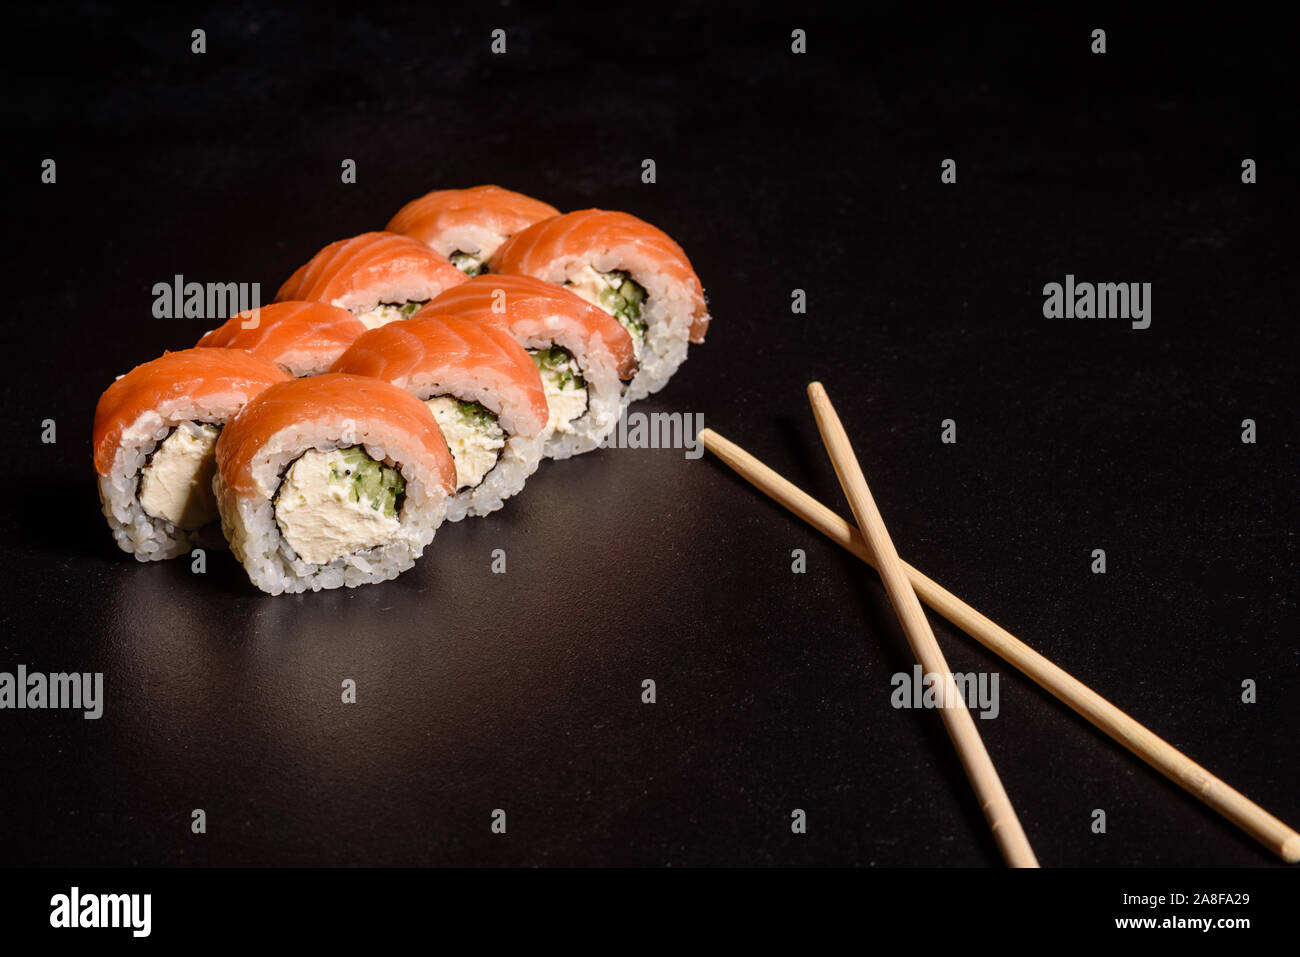 Various kinds of sushi served on a dark background. Roll with salmon, avocado, cucumber. Sushi menu. Japanese food. Stock Photo